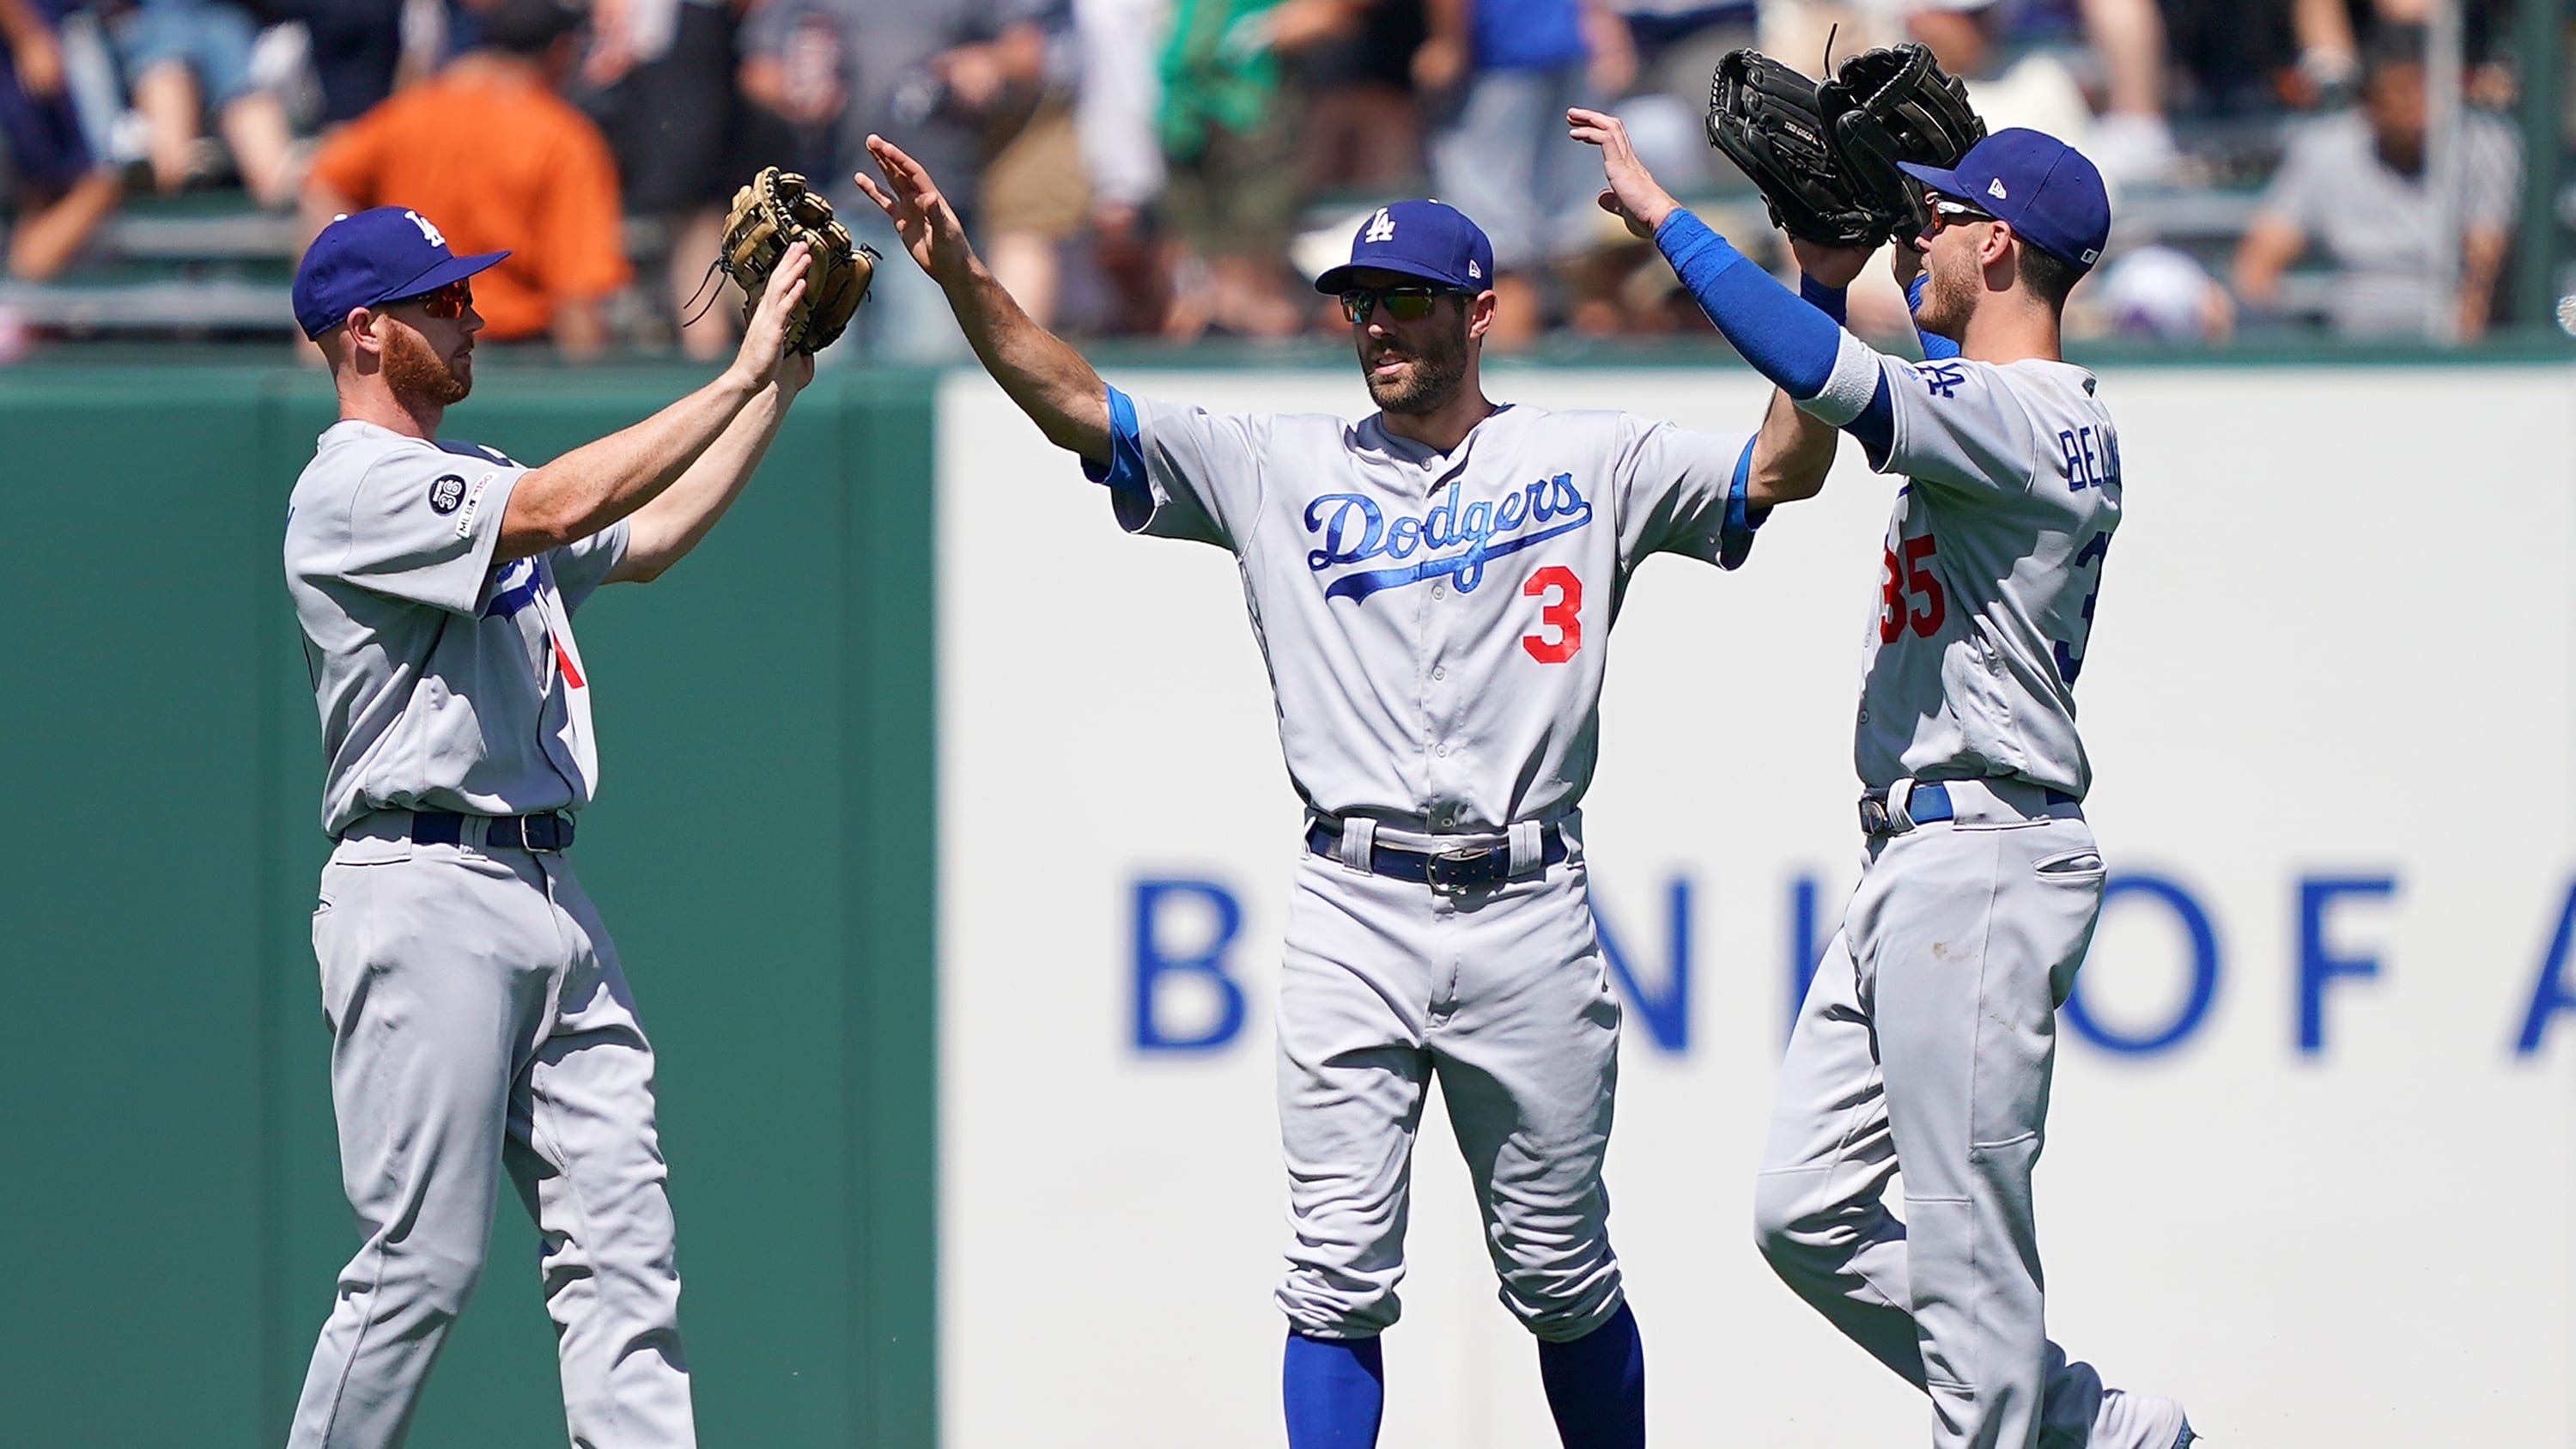 SAN FRANCISCO, CA - JUNE 09:  Kyle Garlick #41, Chris Taylor #3 and Cody Bellinger #35 of the Los Angeles Dodgers celebrates defeating the San Francisco Giants 1-0 at Oracle Park on June 9, 2019 in San Francisco, California.  (Photo by Thearon W. Henderson/Getty Images)